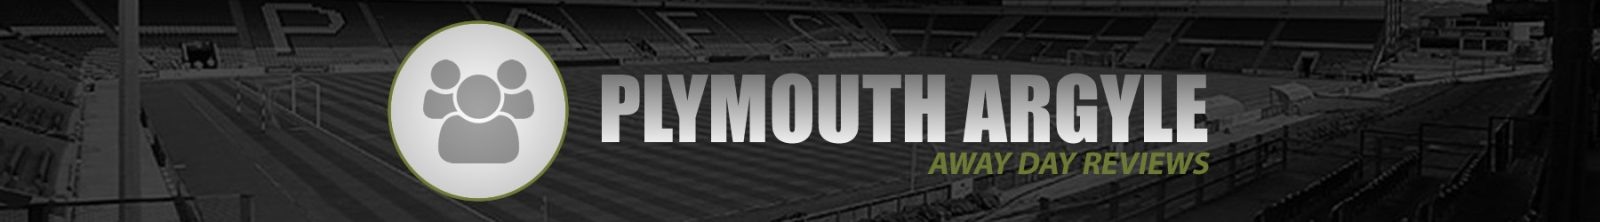 Review Plymouth Argyle